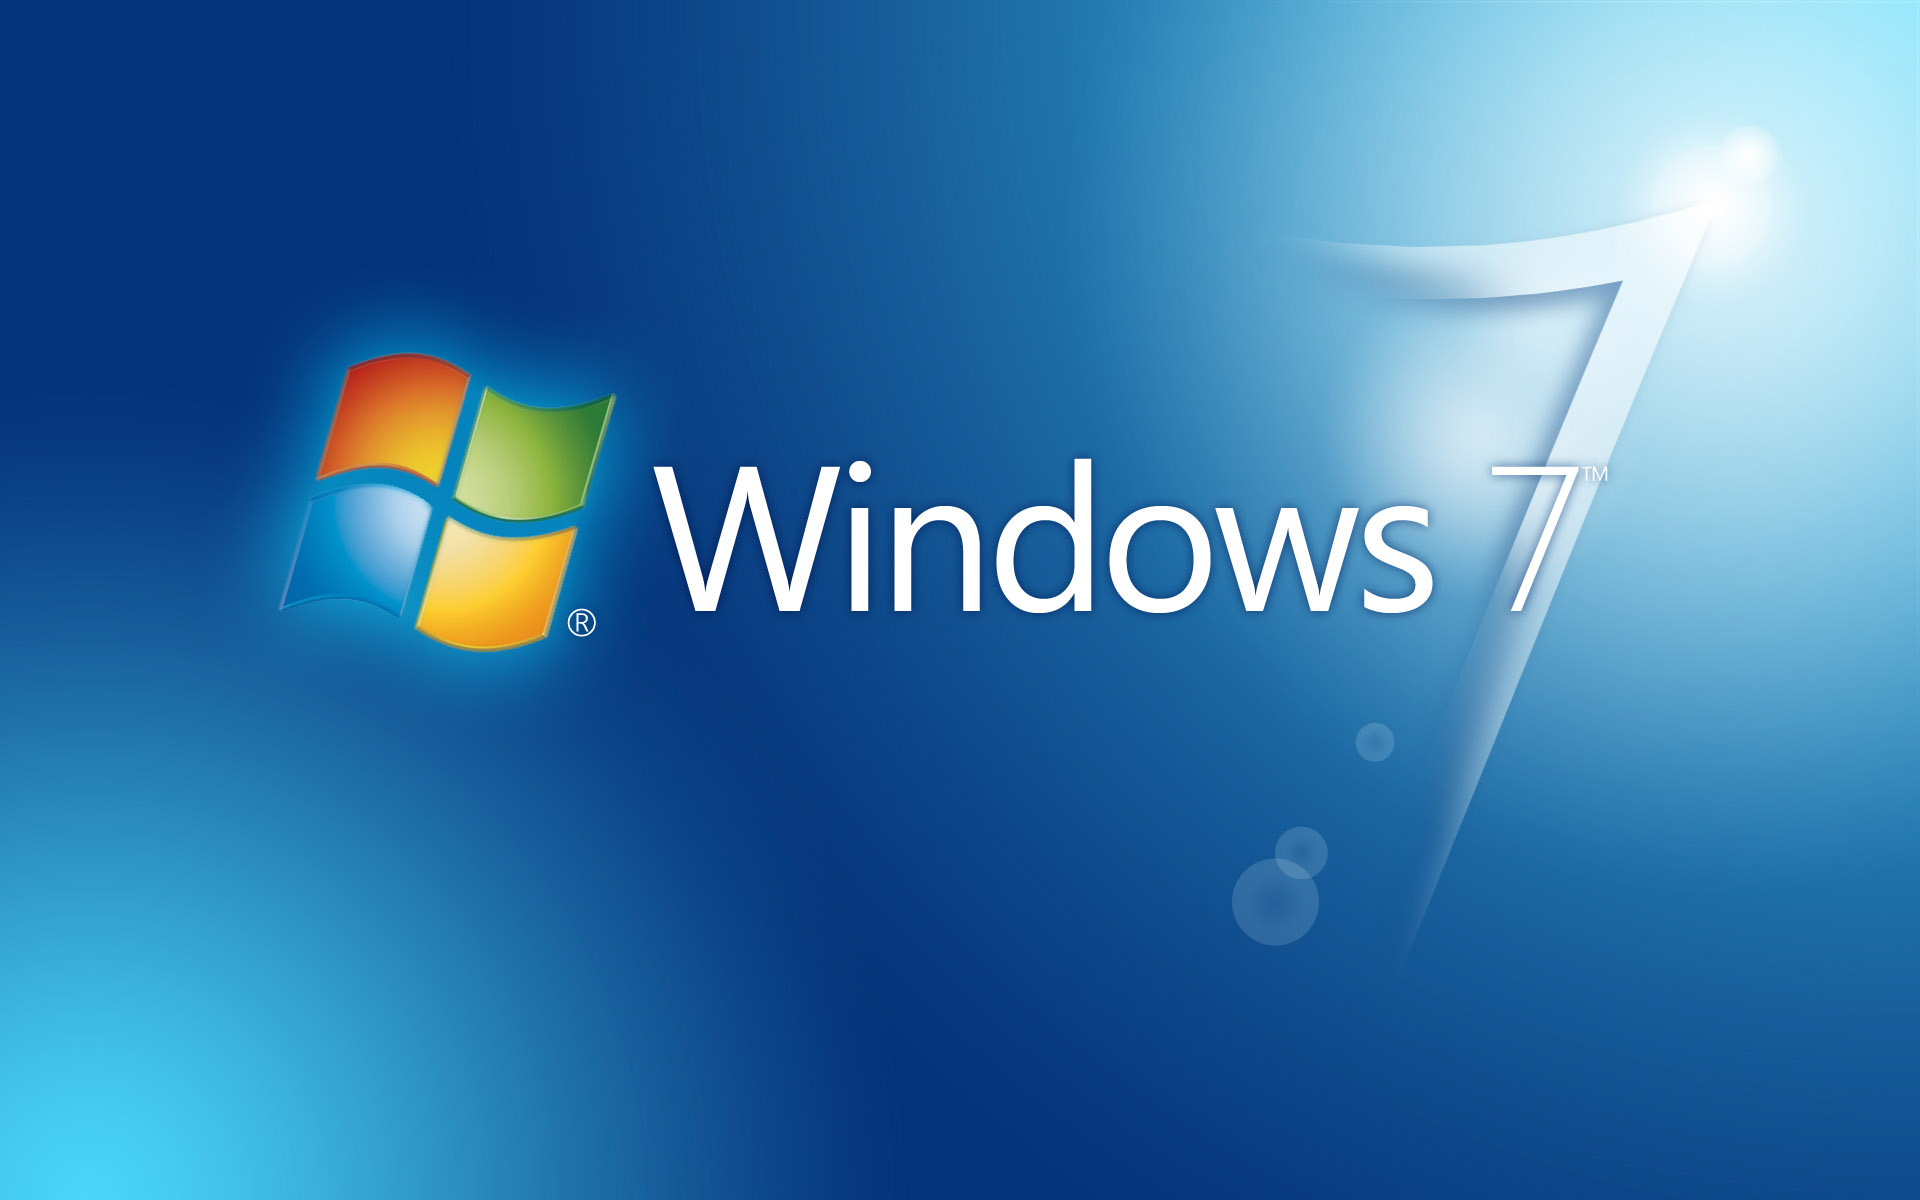 Free HQ Windows 7 Ultimate 49 Wallpaper - Free HQ Wallpapers